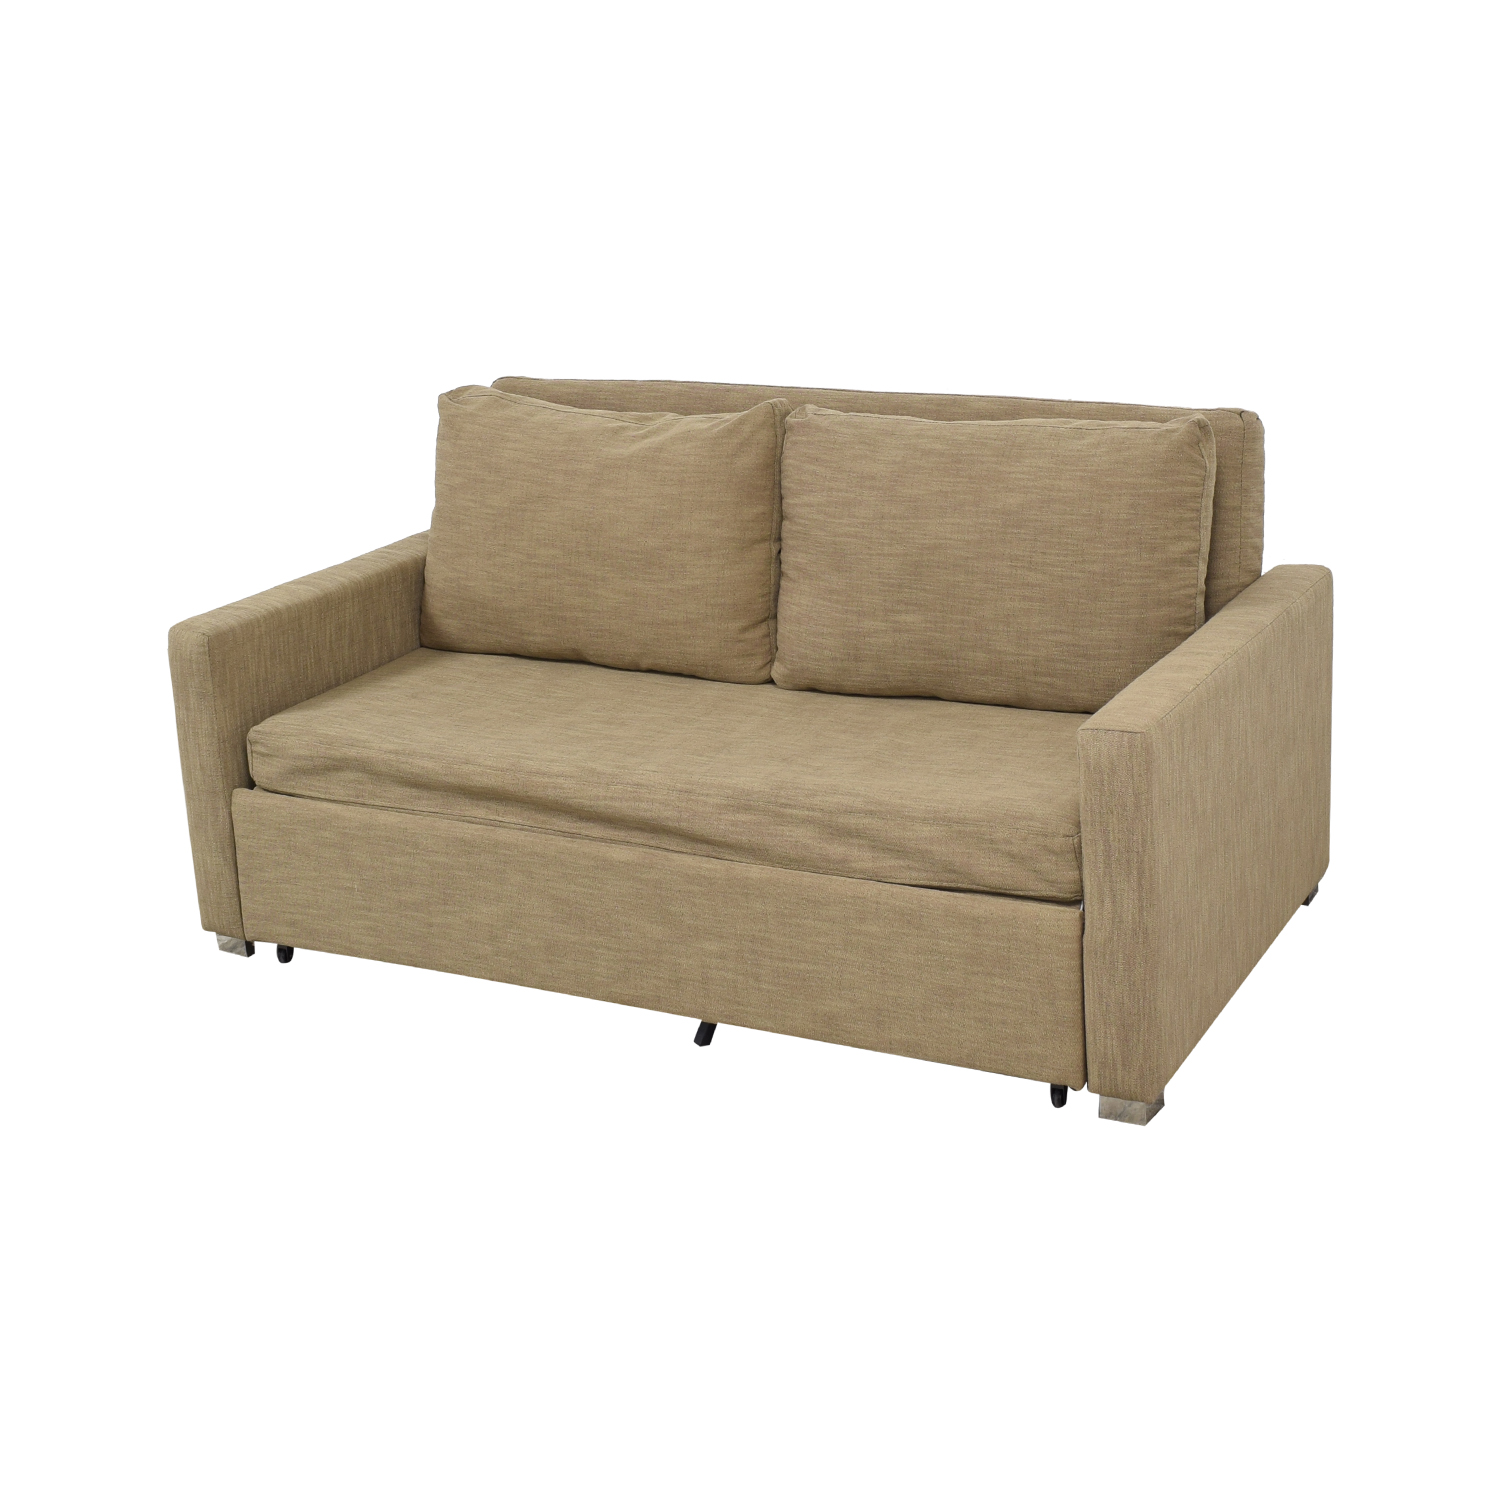 buy Expand Furniture Harmony Queen Sleeper Sofa  Sofa Beds